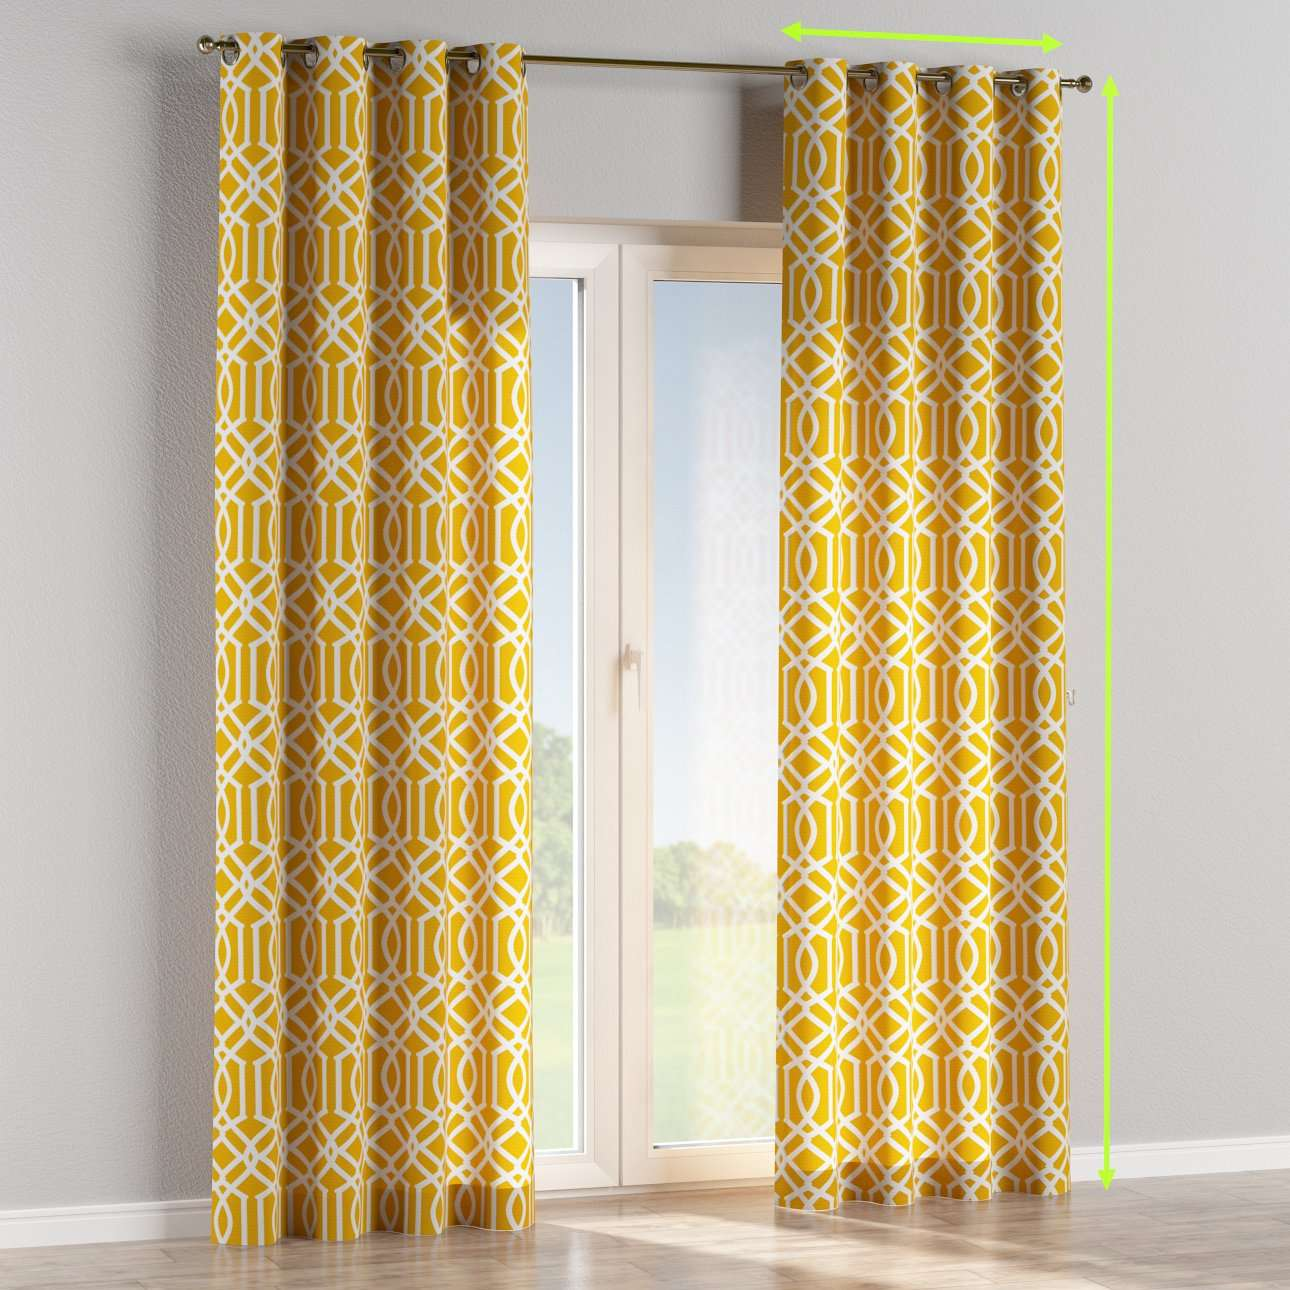 Eyelet lined curtains in collection Comic Book & Geo Prints, fabric: 135-09